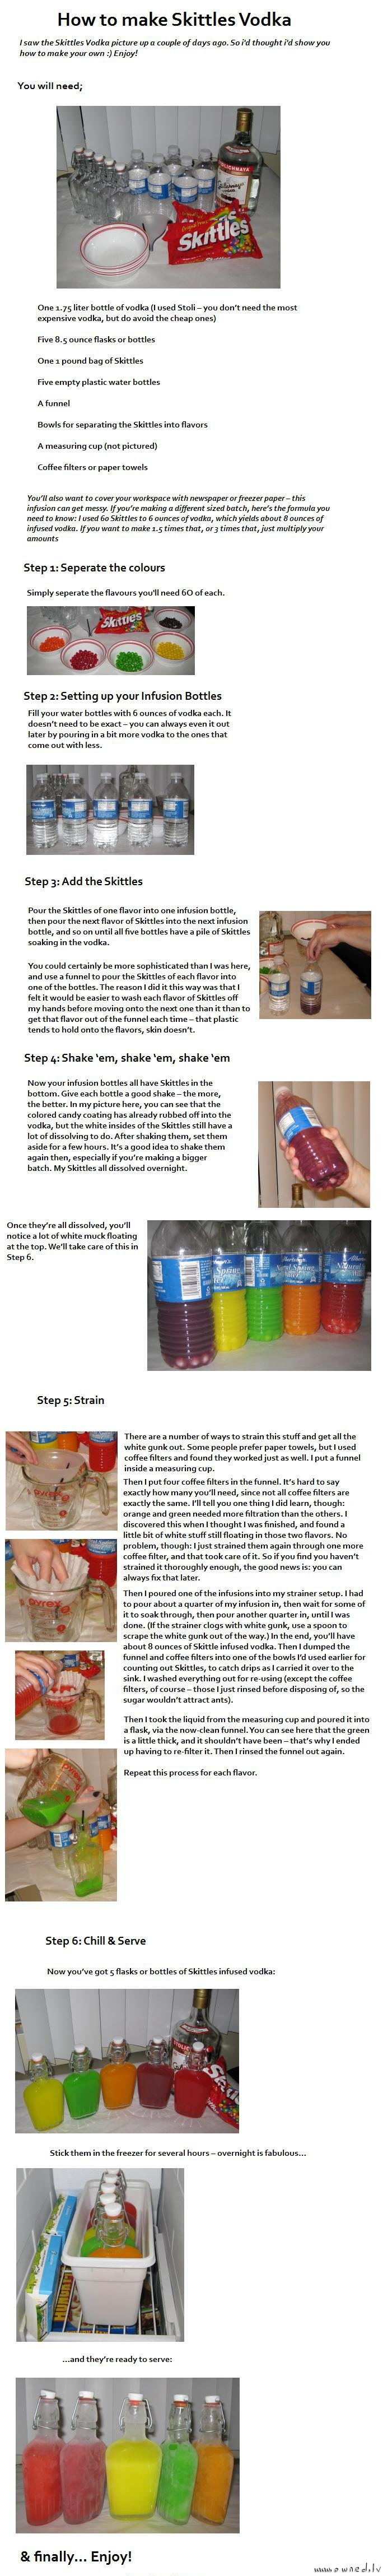 How to make skittles vodka